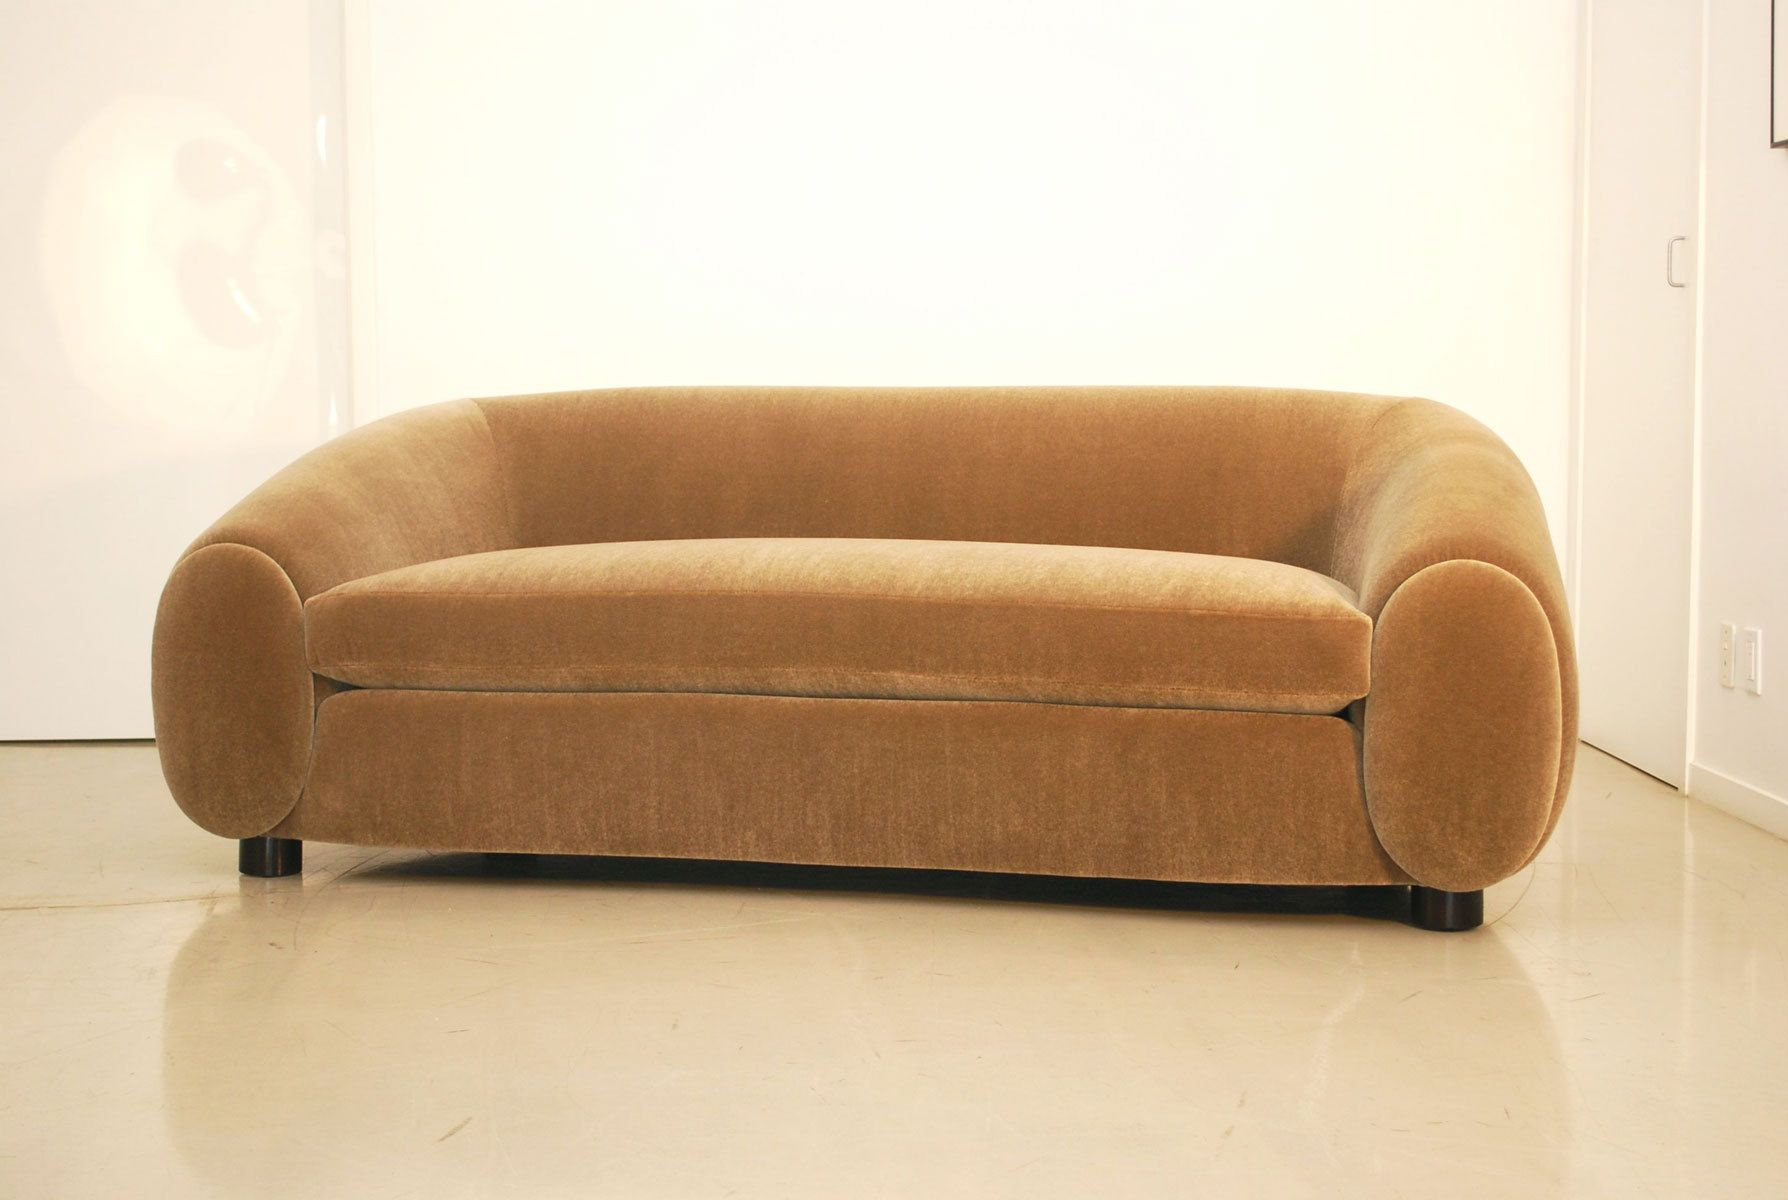 Custom Jean Royere-inspired Sofa